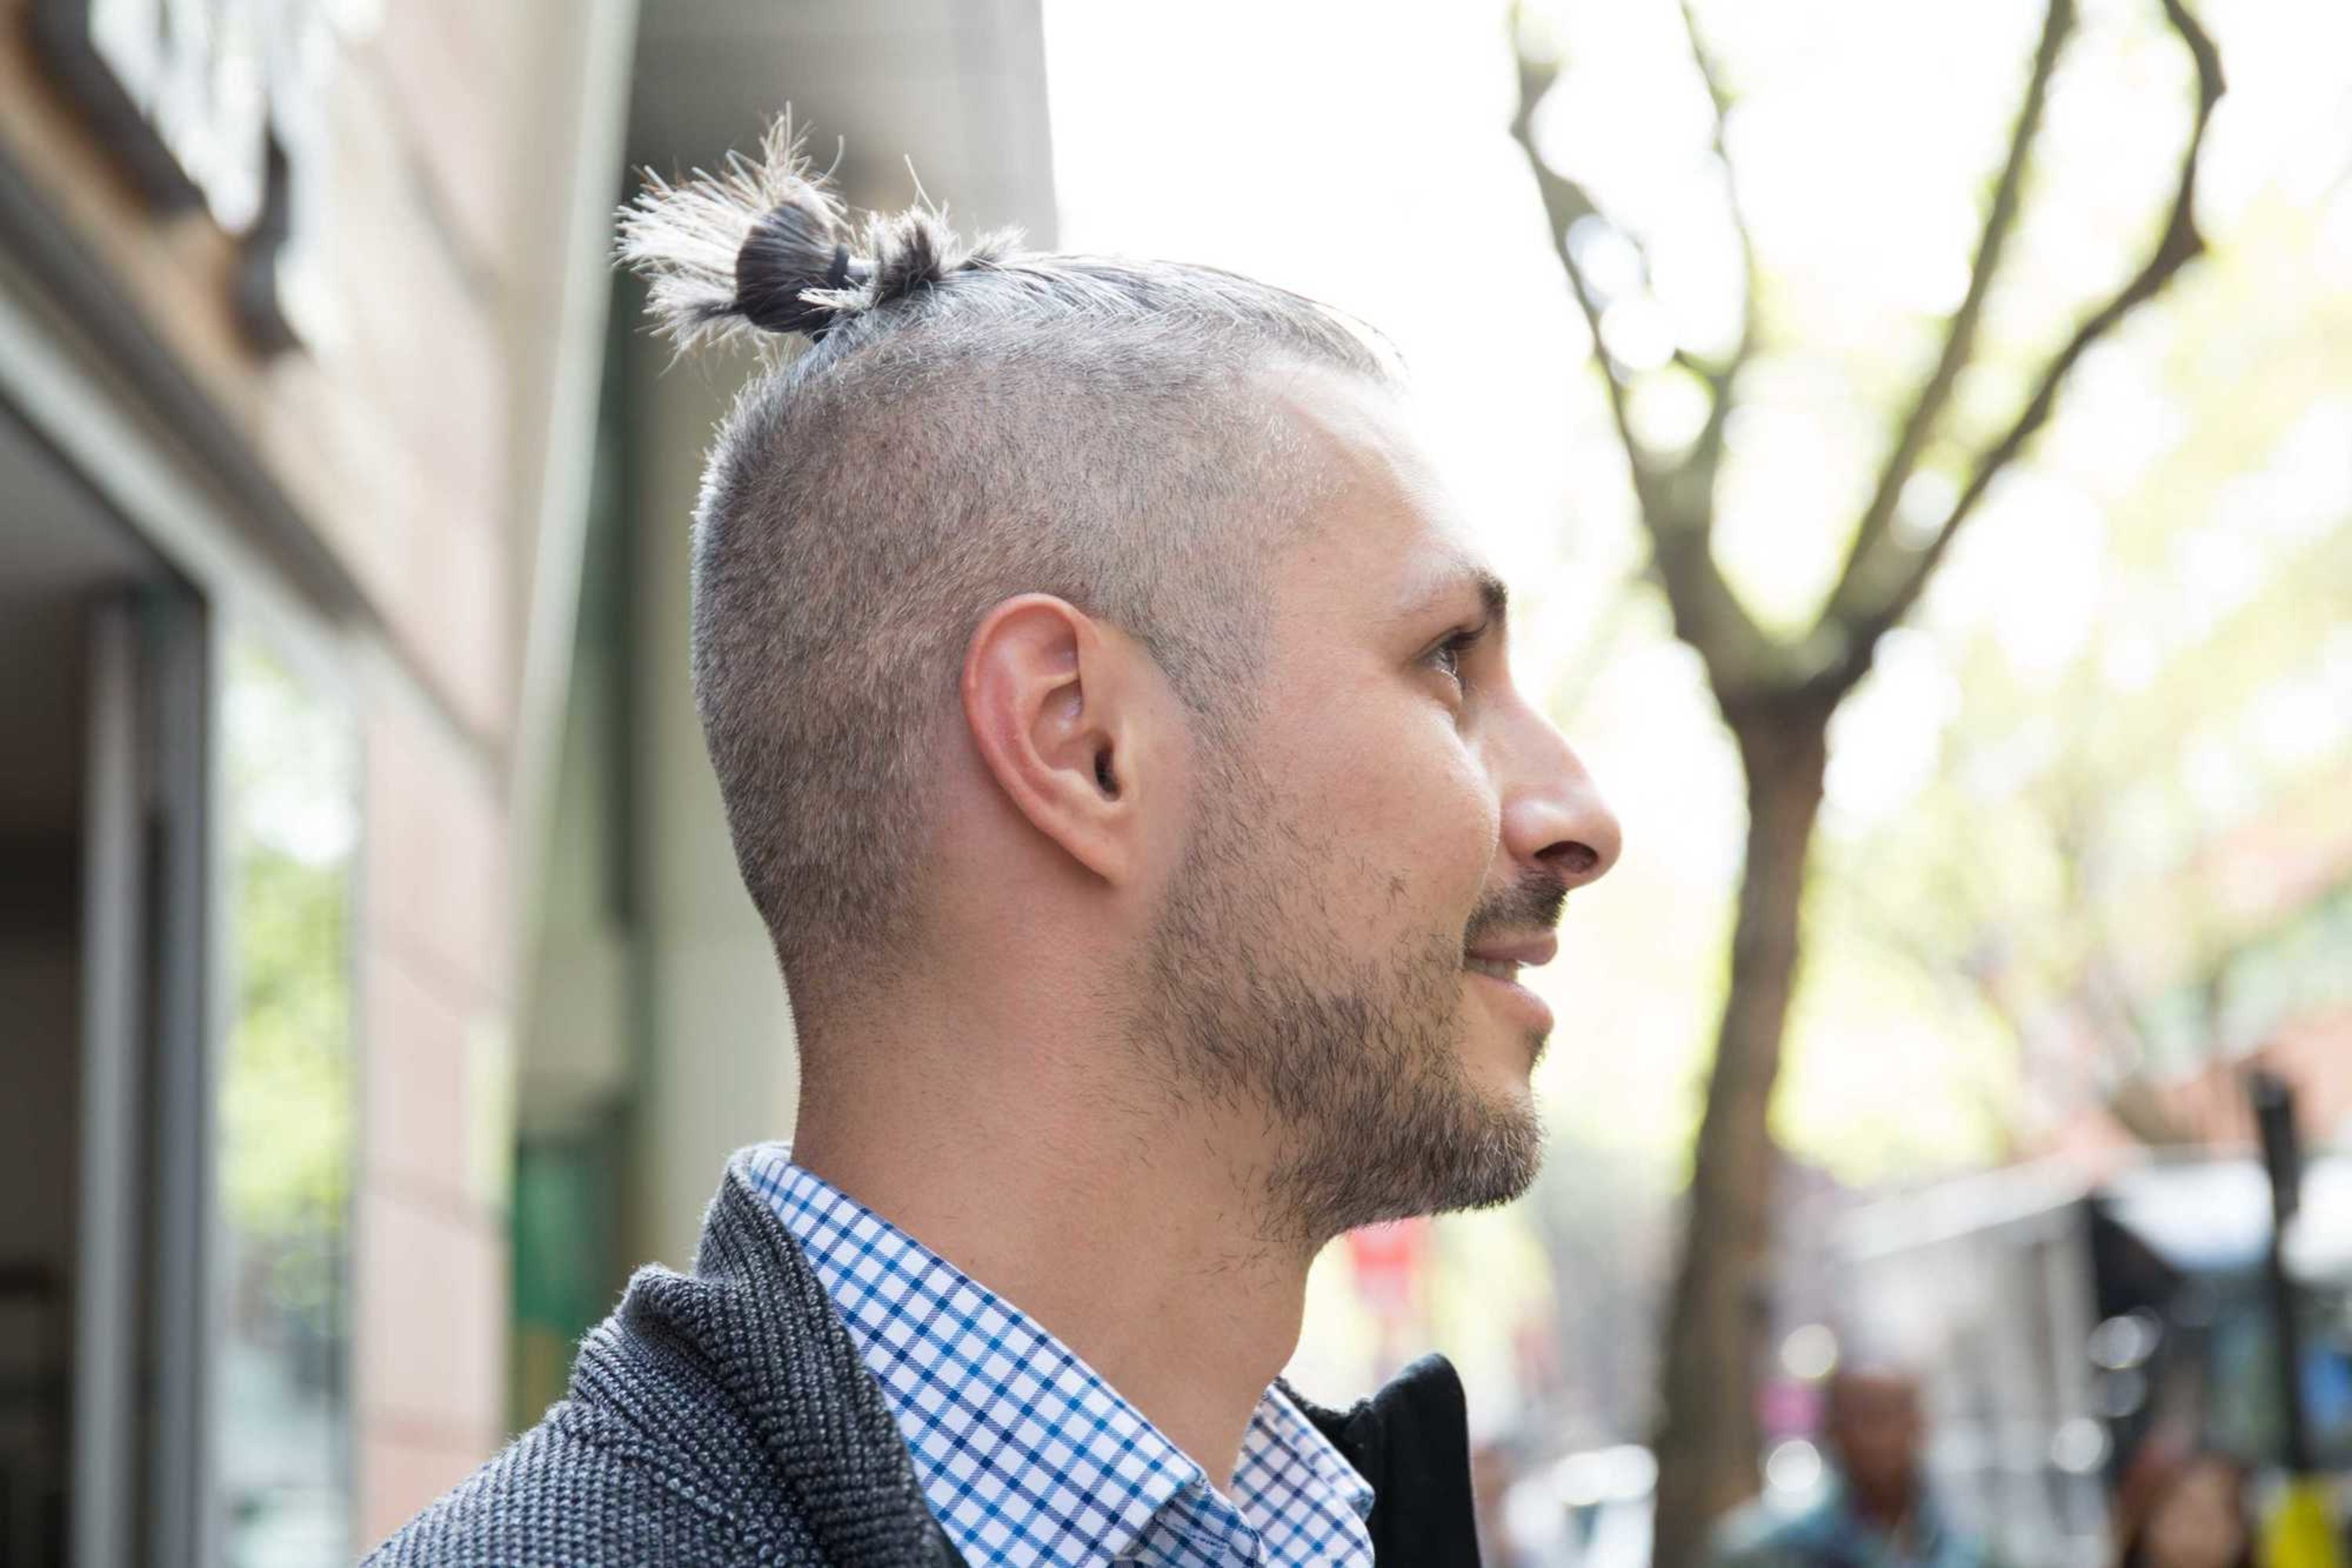 A shaved head hairstyle with a bun.